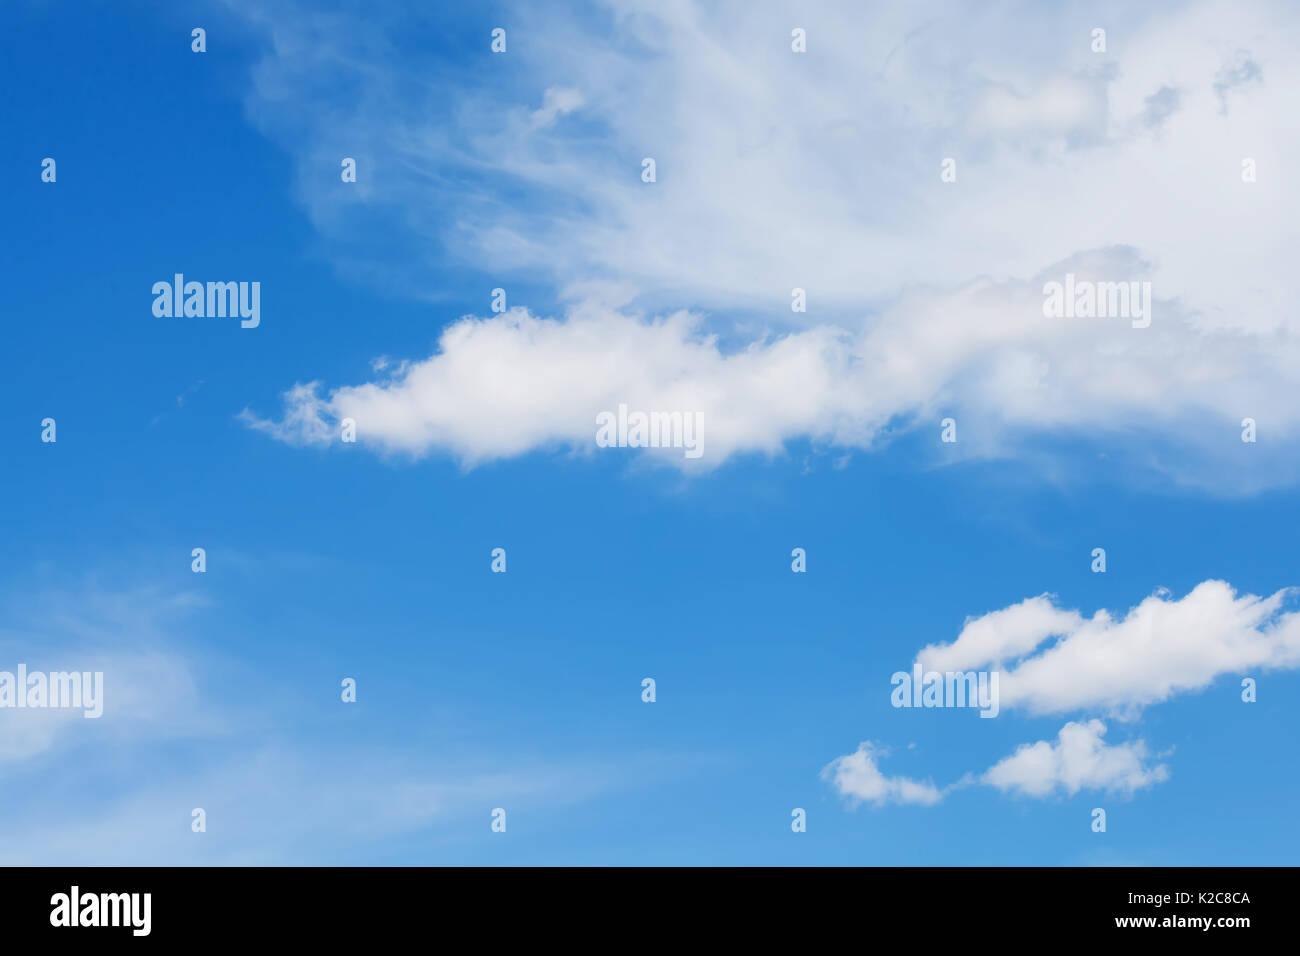 Blue sky background with white clouds. Summertime landscape - Stock Image